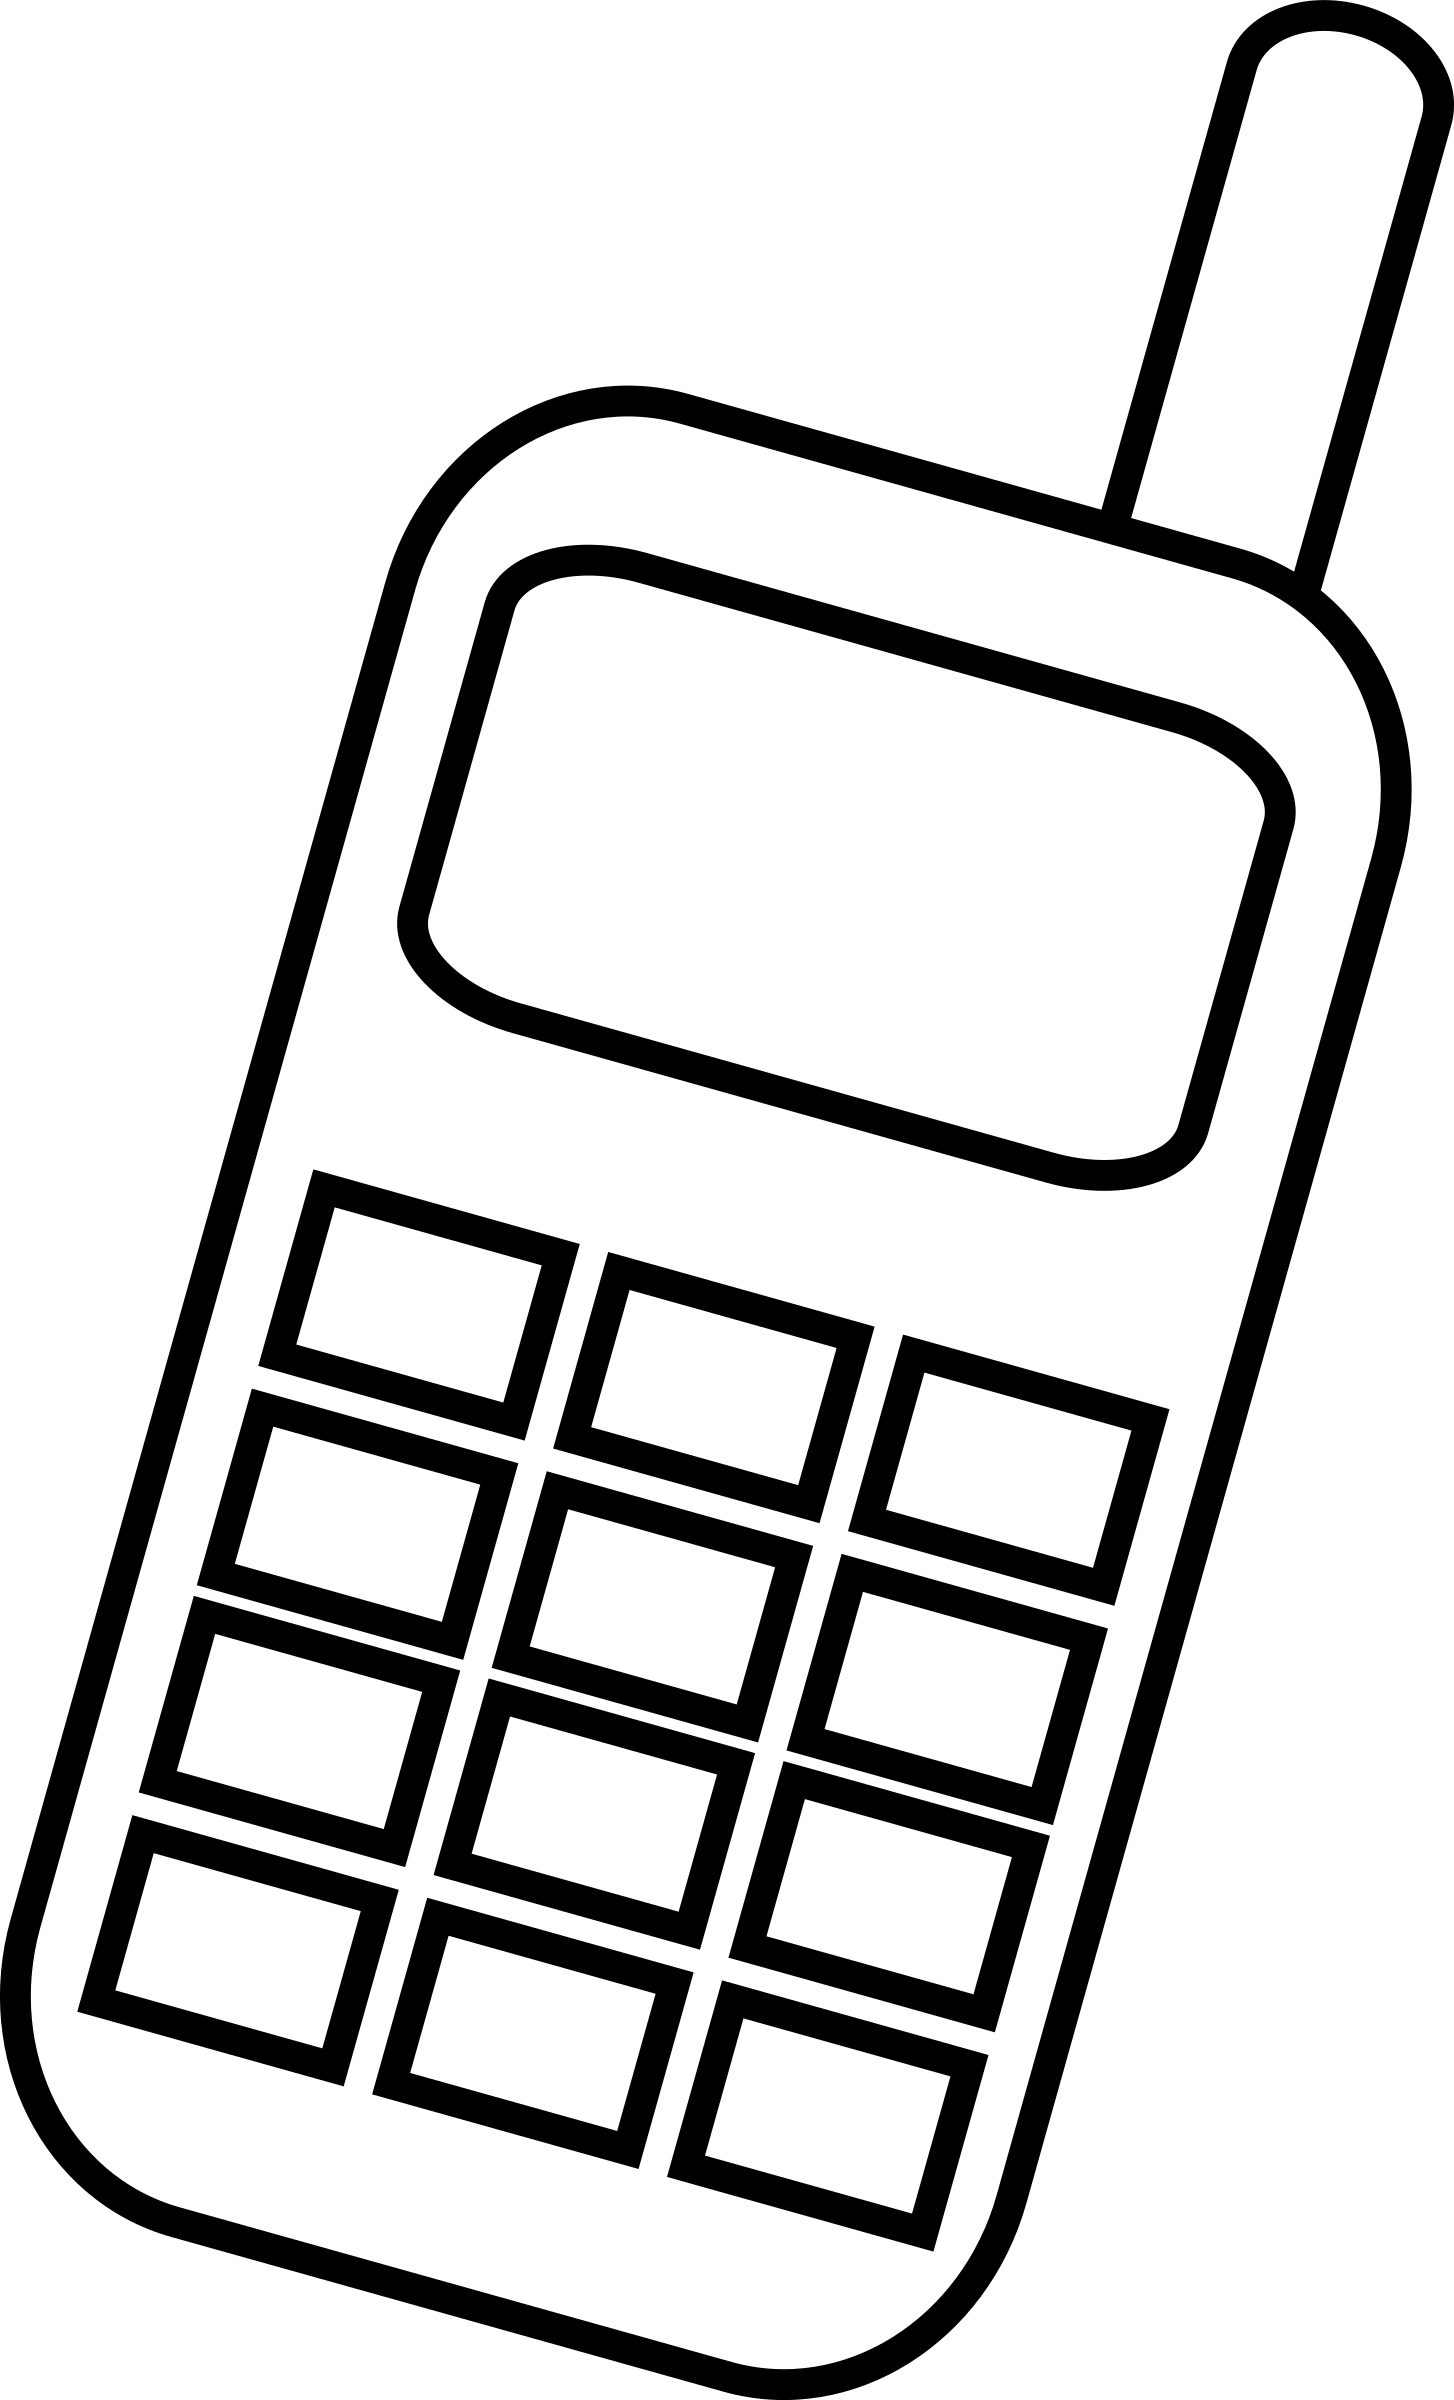 png transparent download Icon mobile big image. Cell phone clipart png.